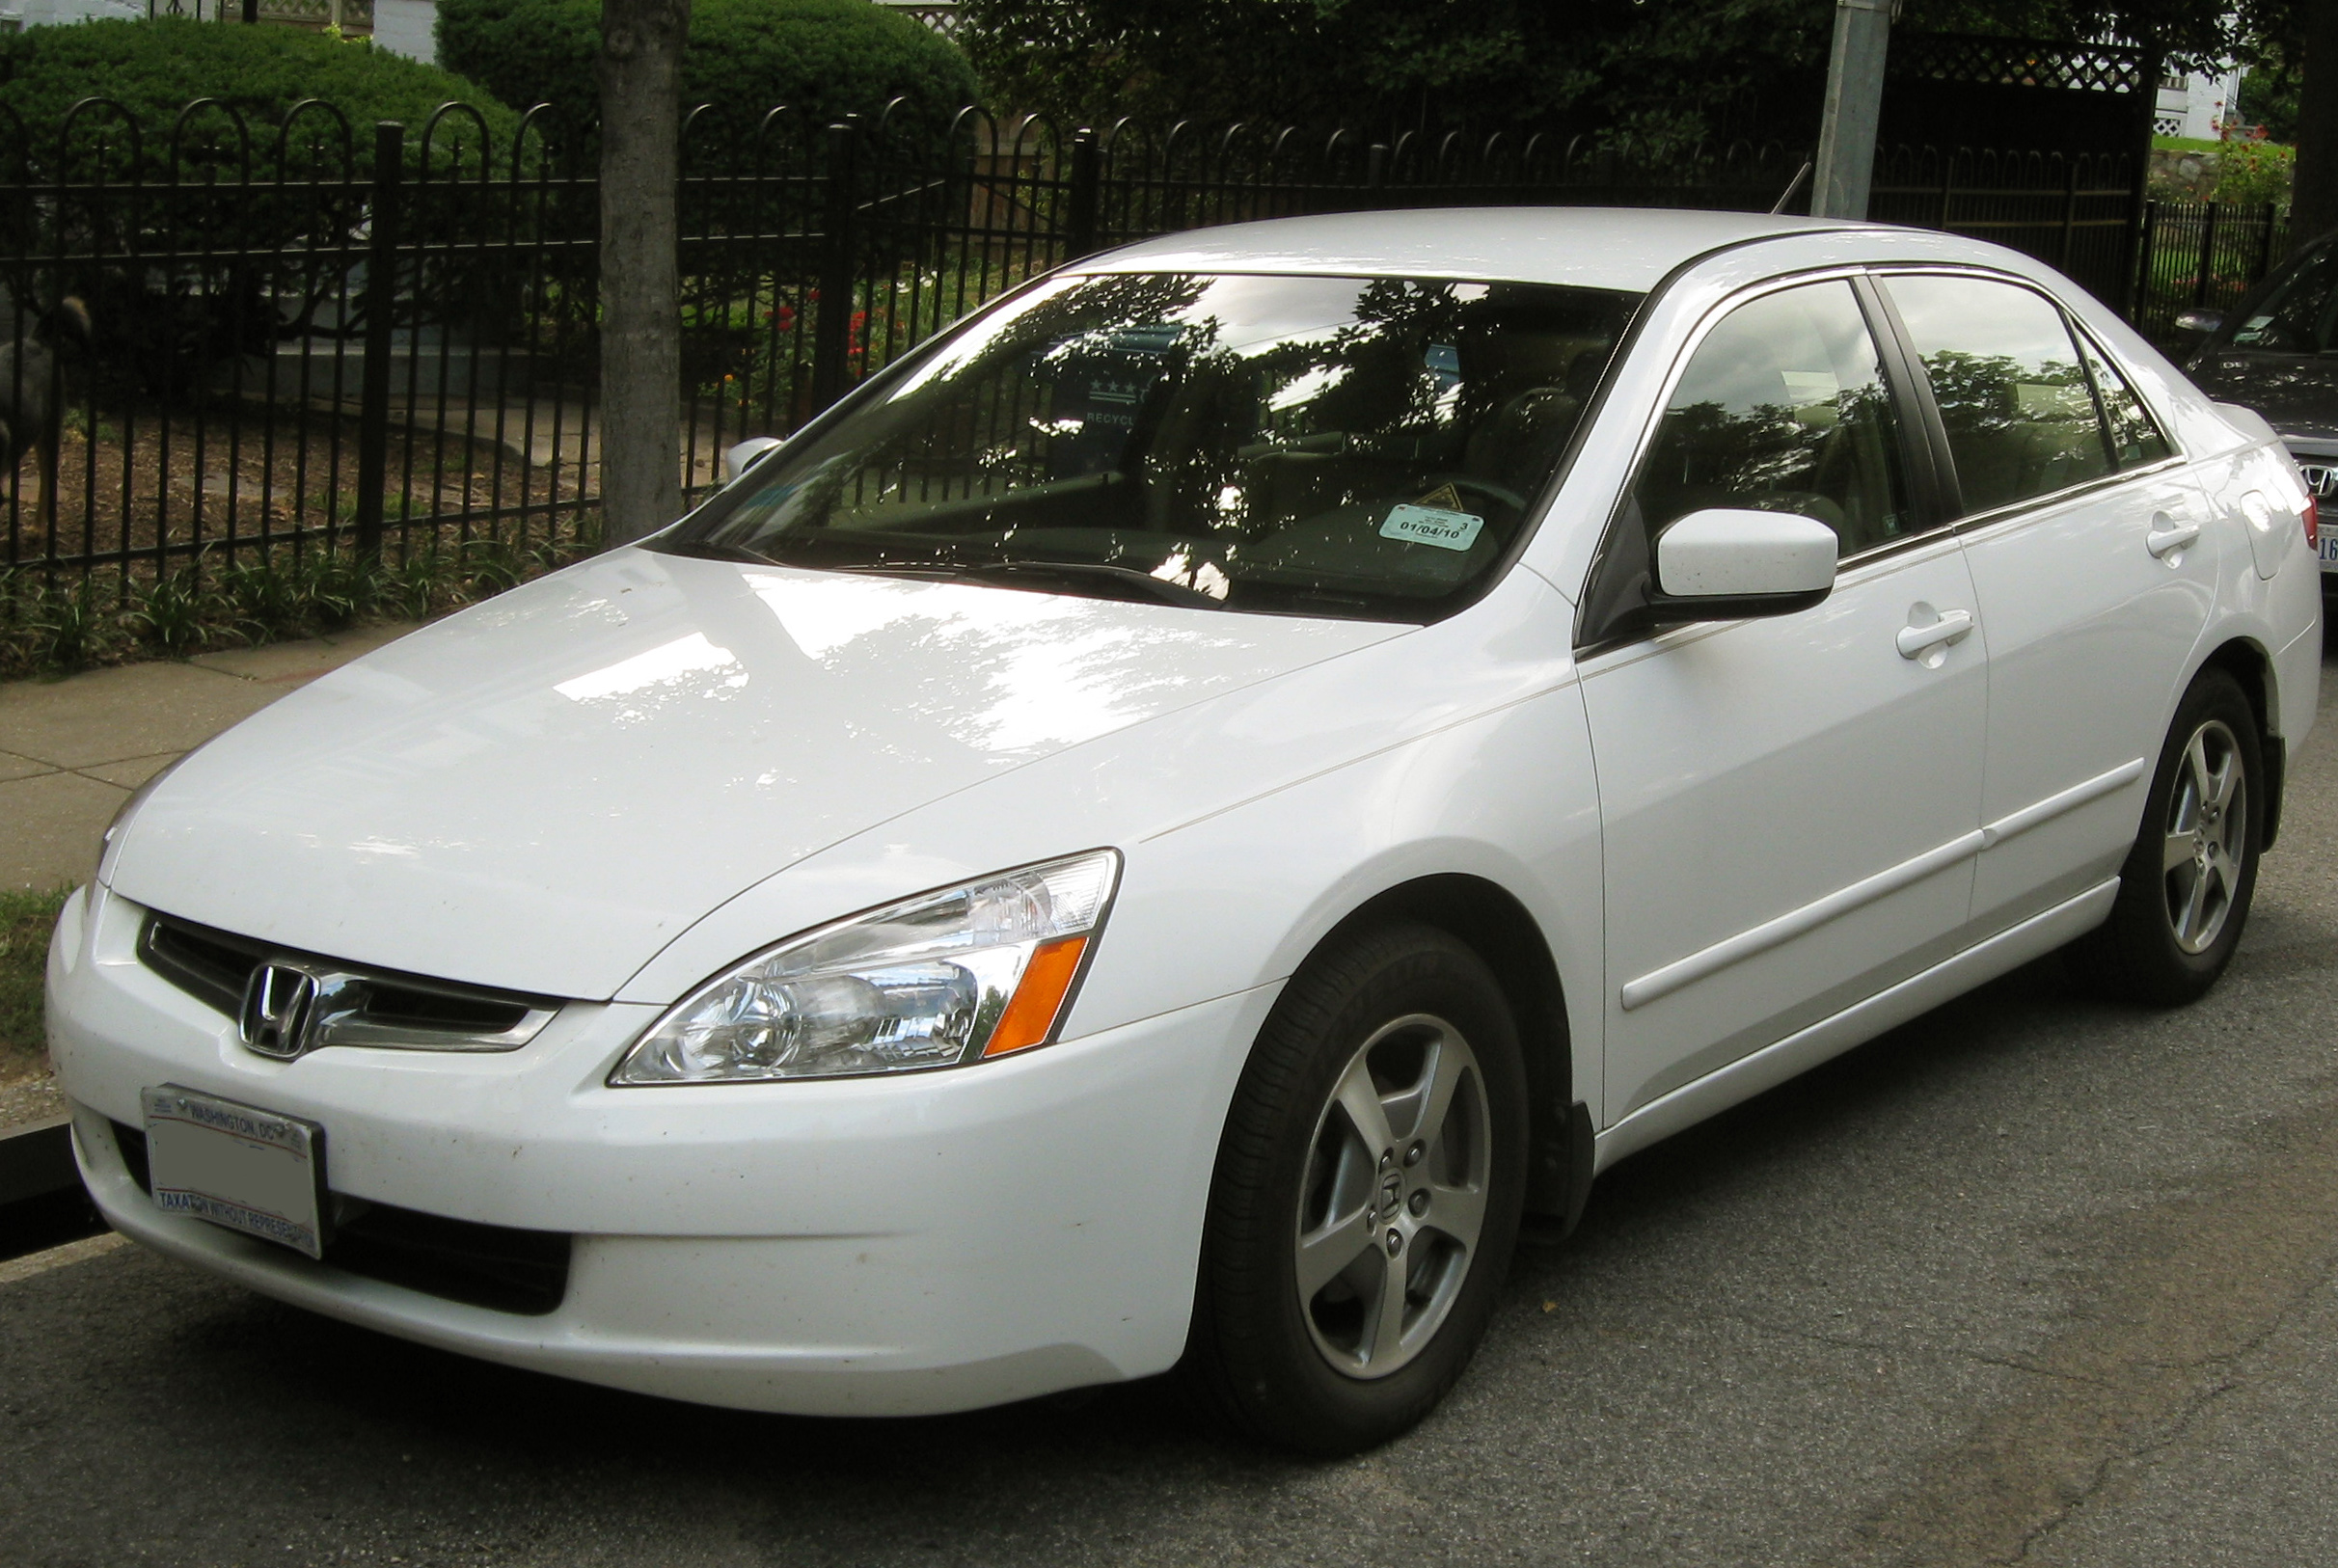 ファイル 2005 Honda Accord Hybrid 07 09 2009 Jpg